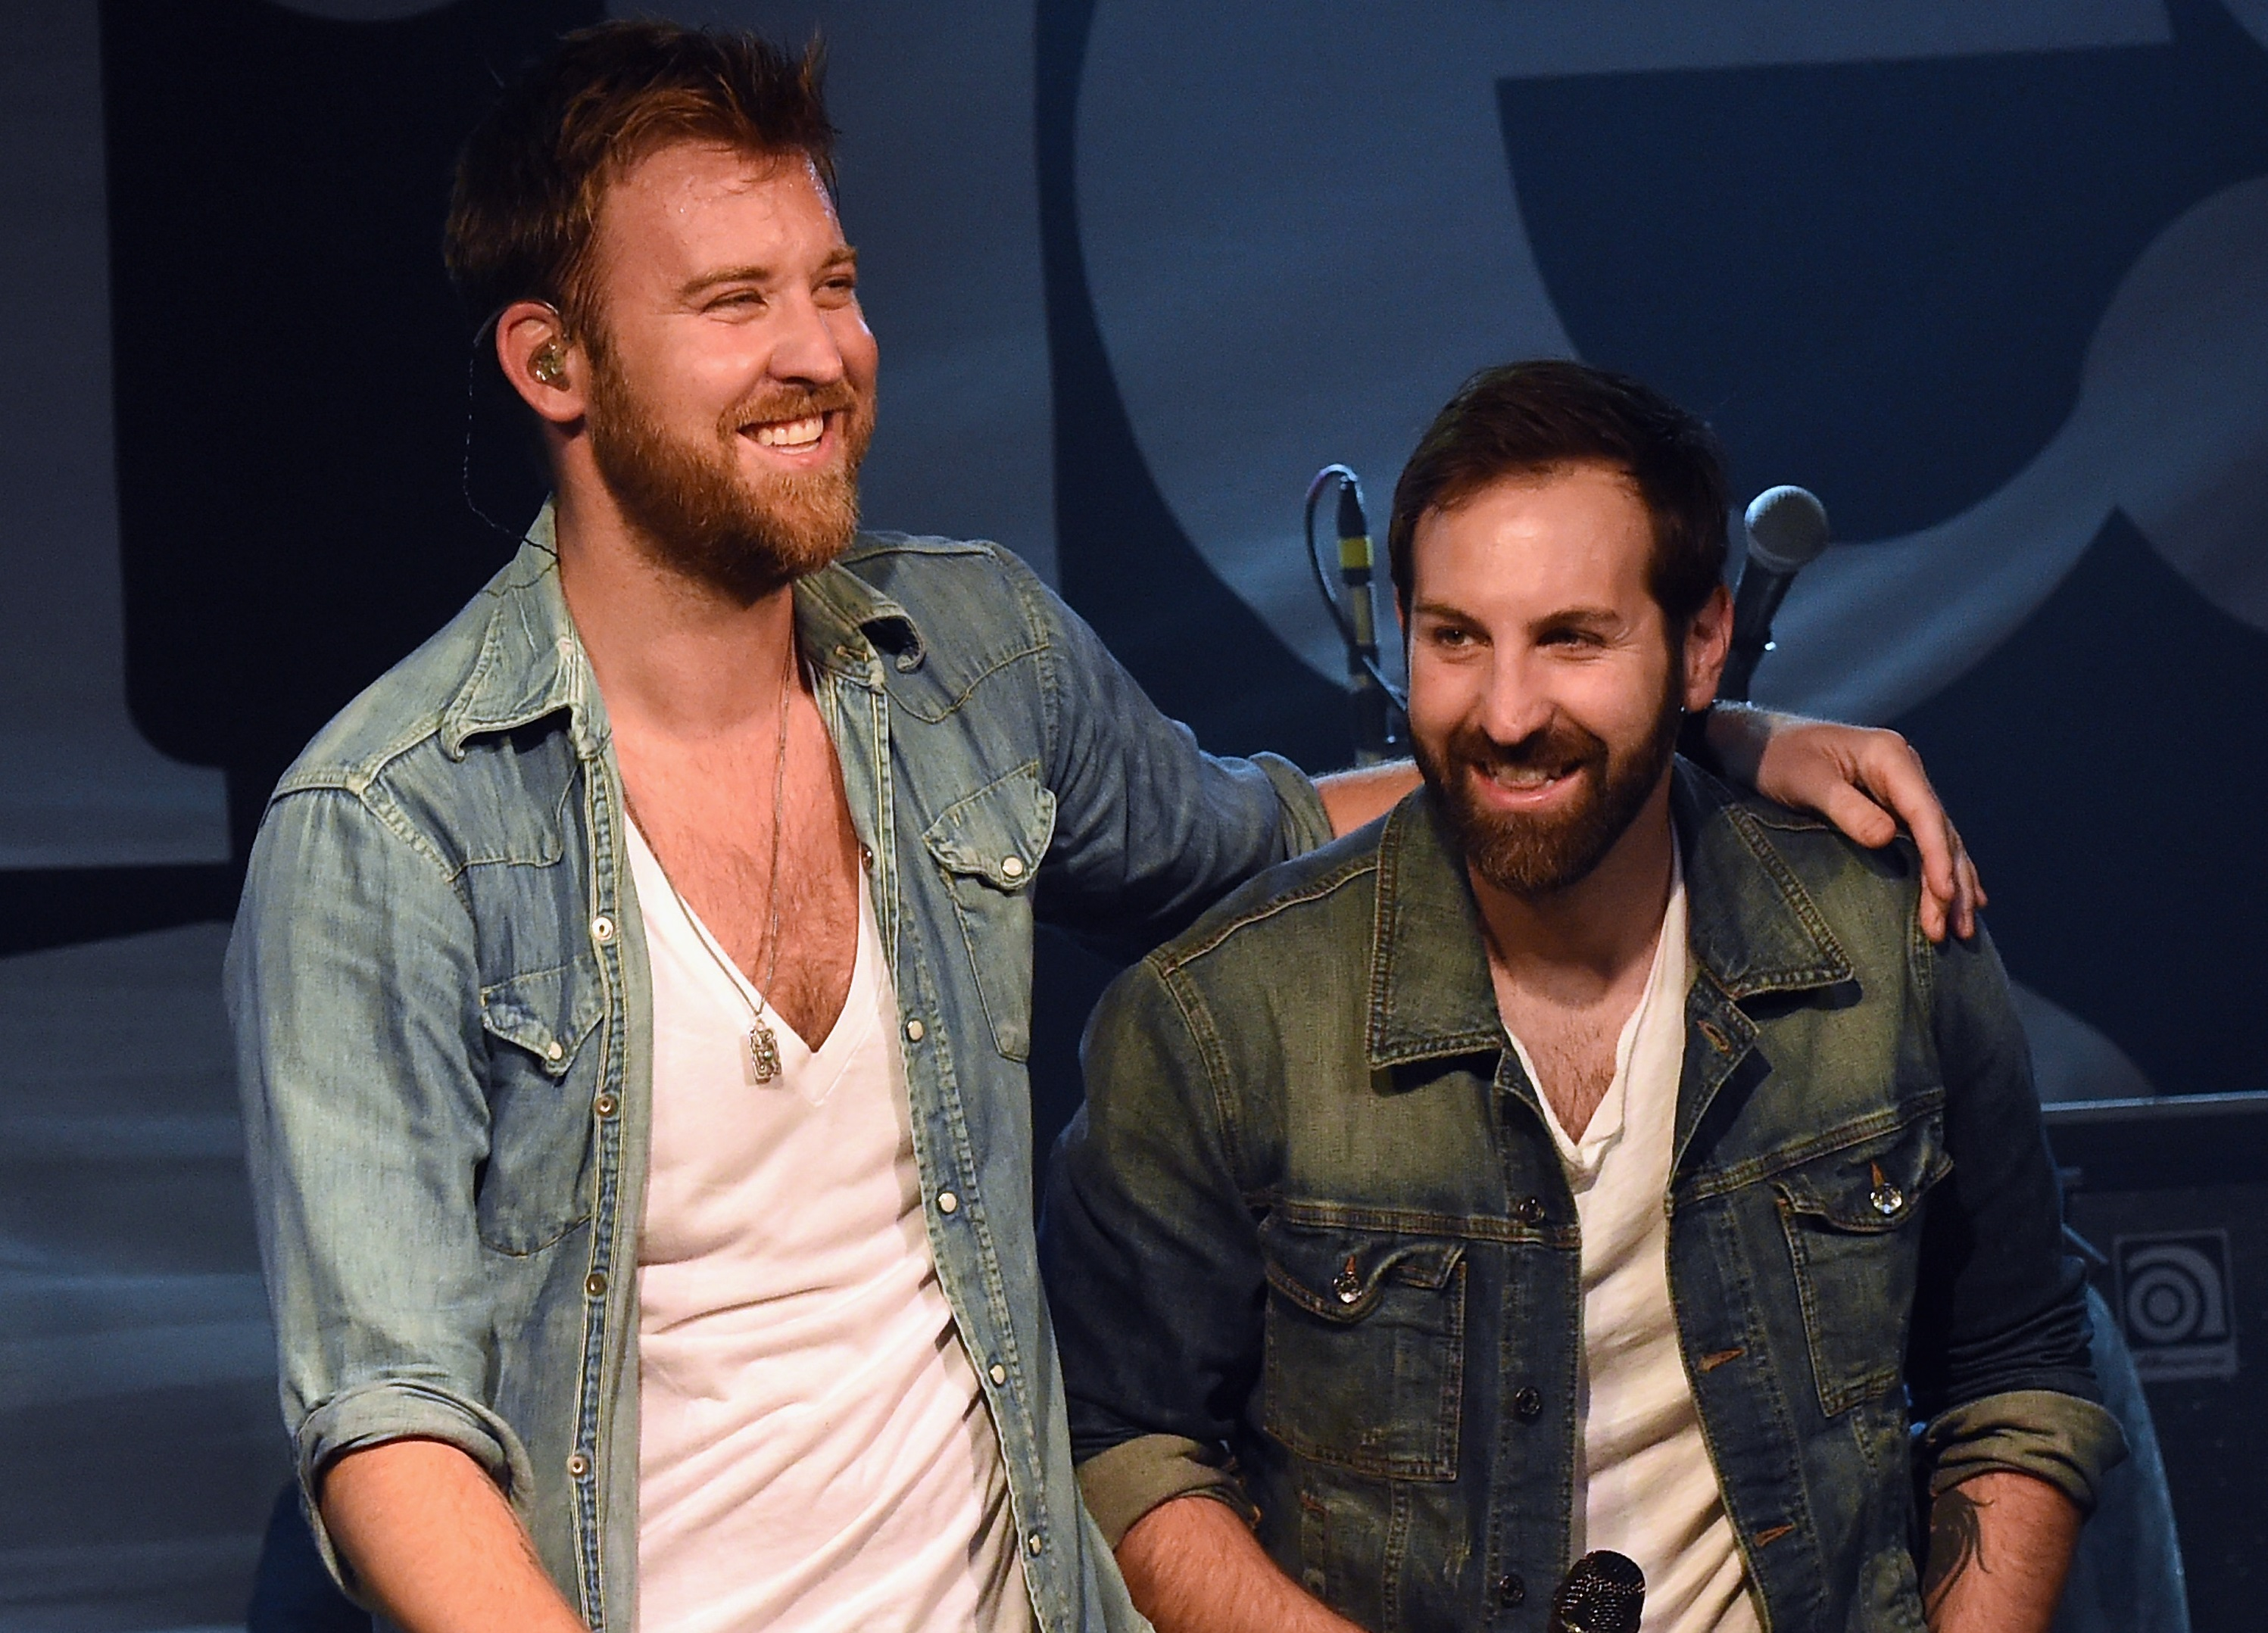 Charles Kelley and brother Josh Kelley; Photo by Rick Diamond/Getty Images for 3rd & Lindsley